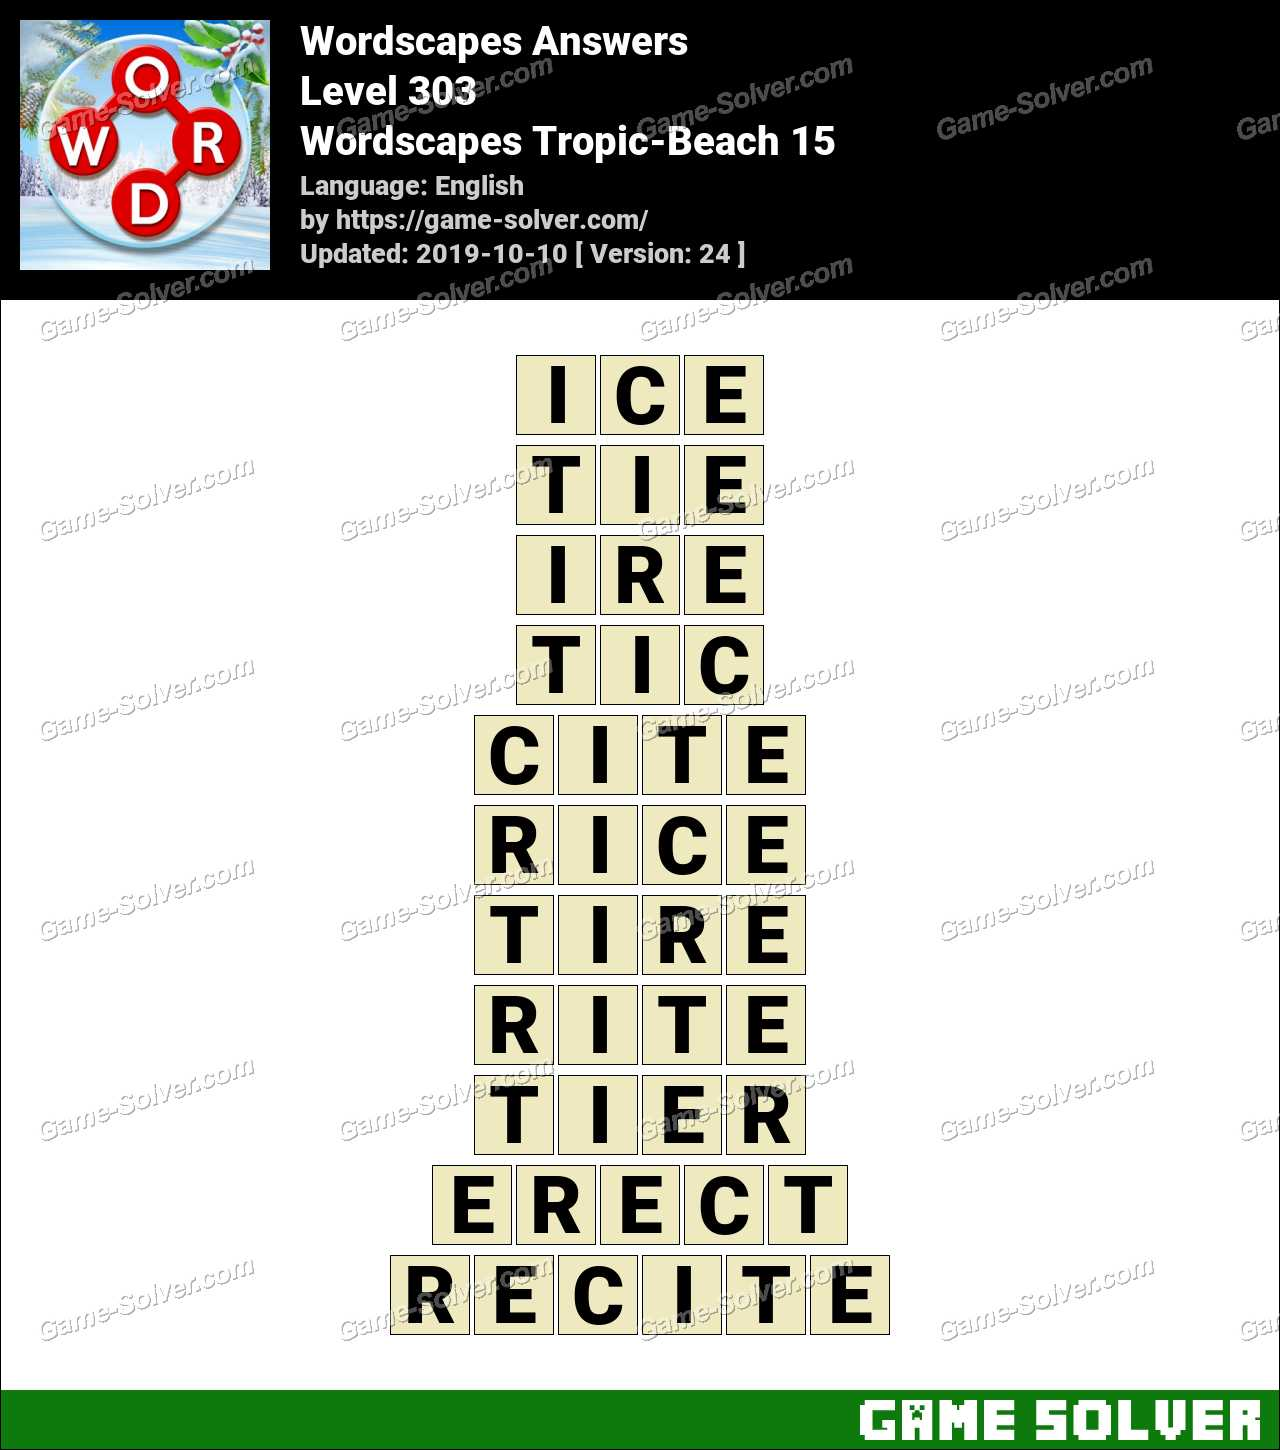 Wordscapes Tropic-Beach 15 Answers